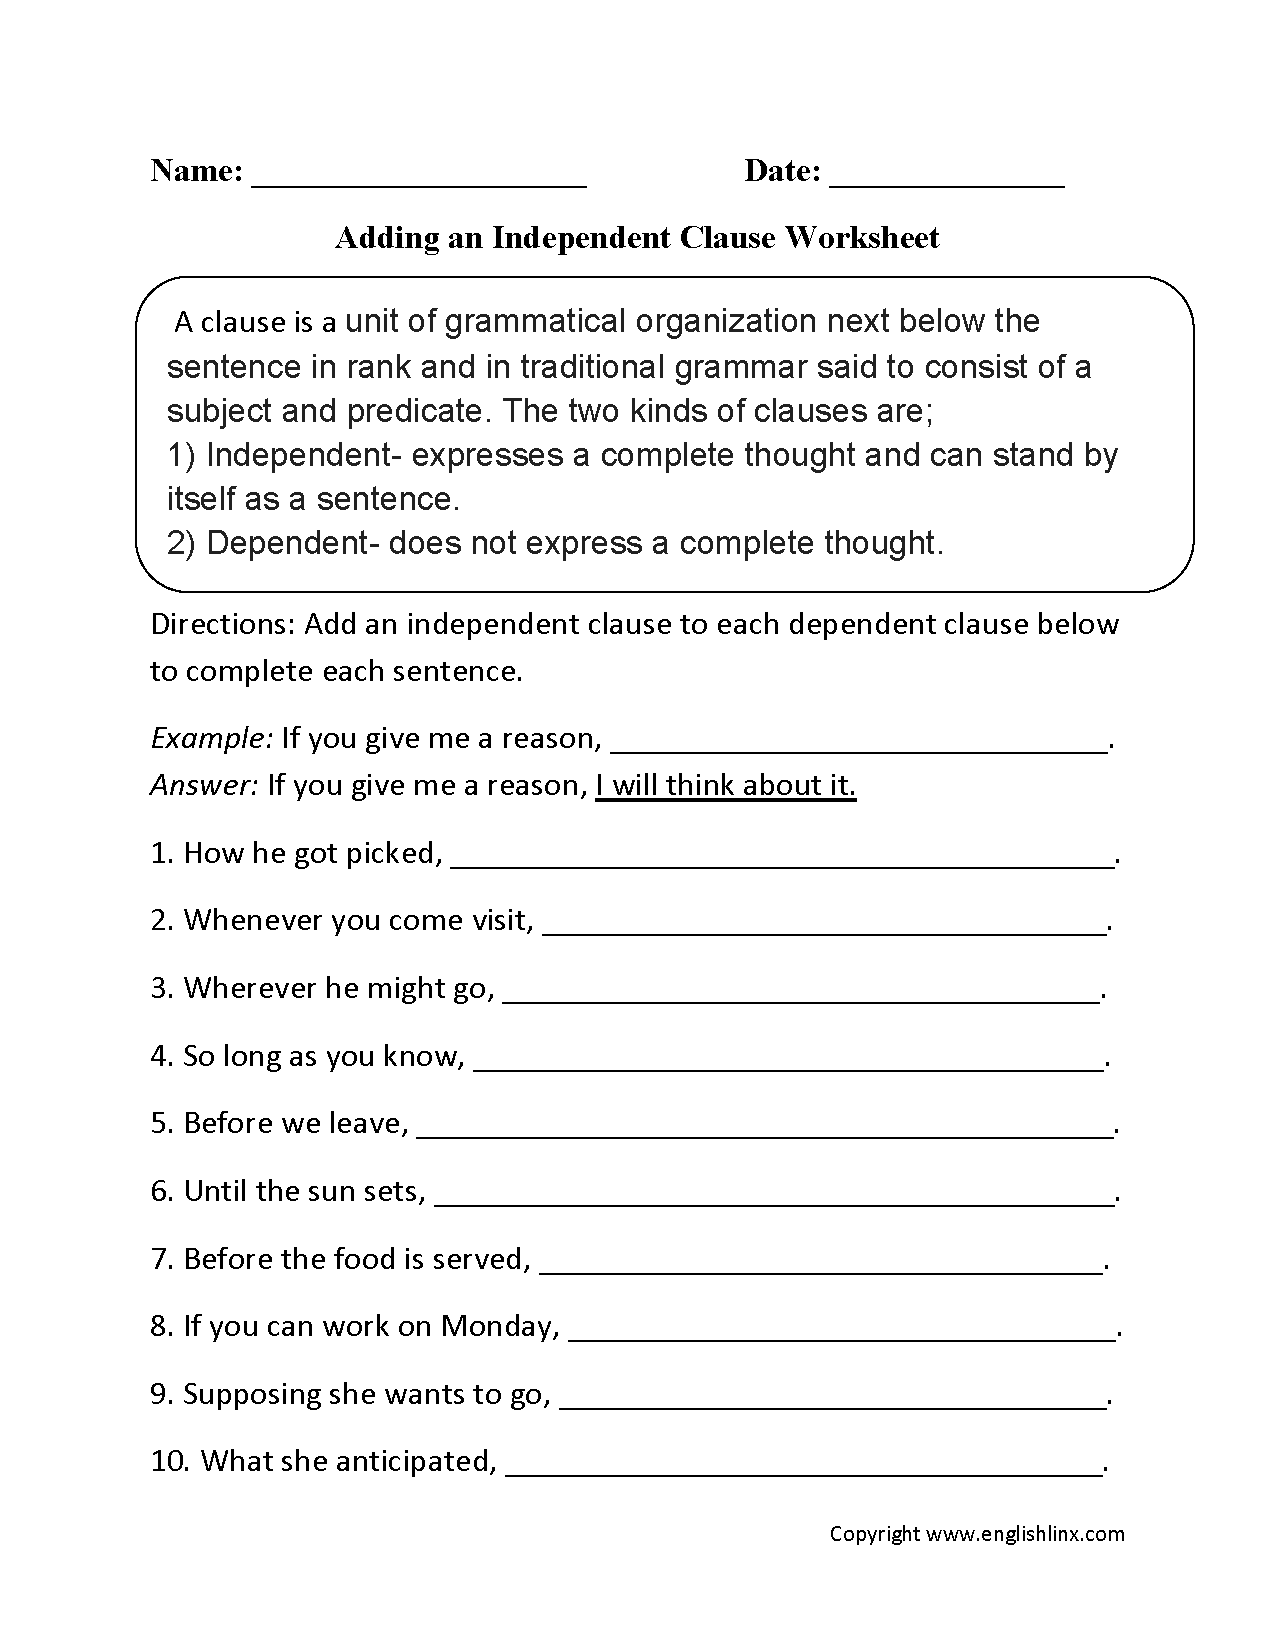 Worksheets 7th Grade Grammar Worksheets adding an inependent clause worksheet clauses pinterest worksheet